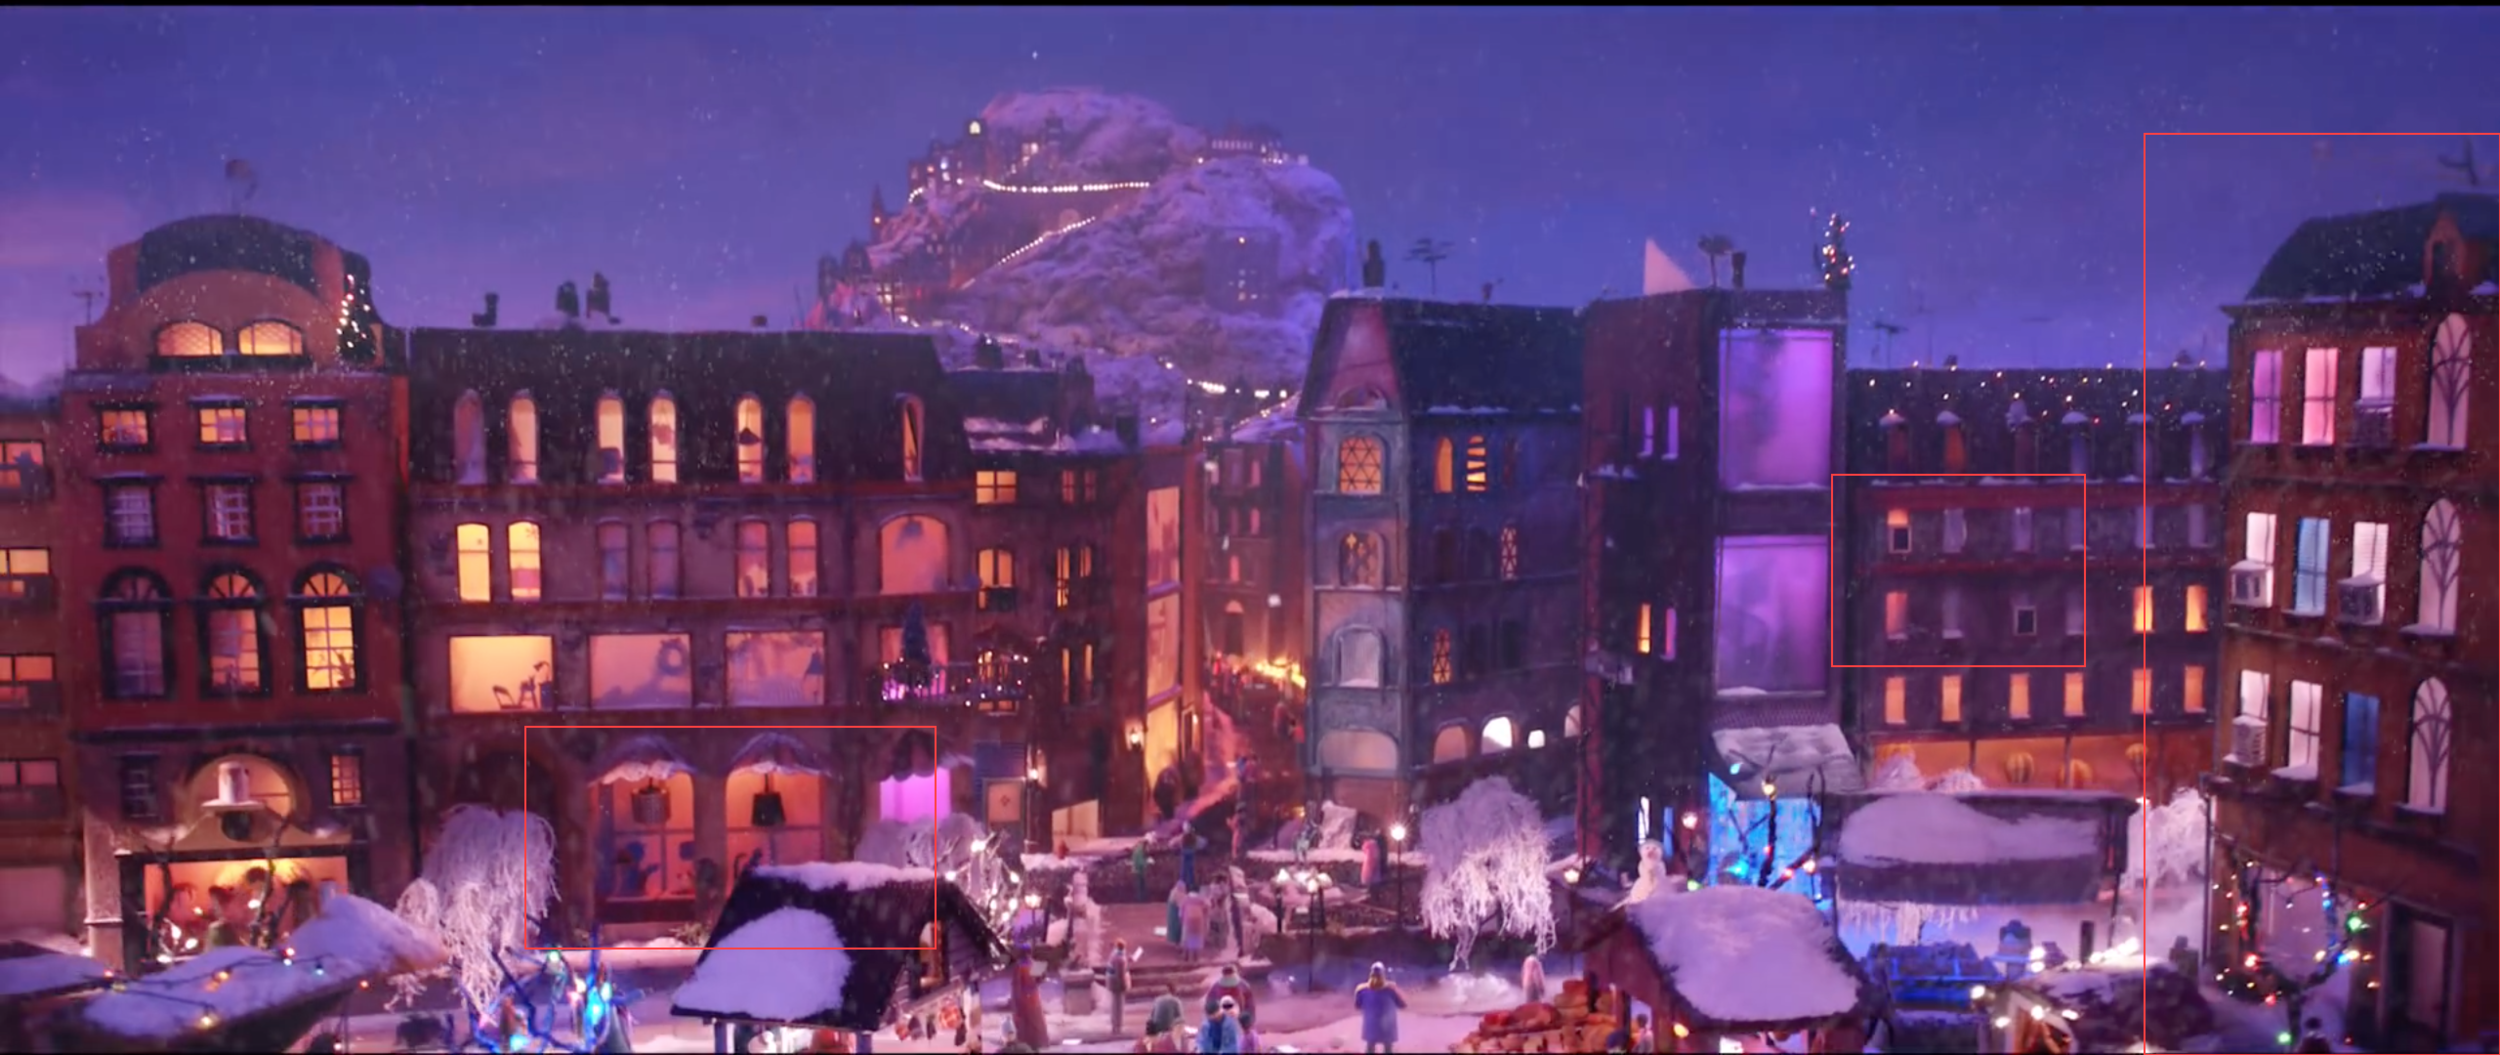 Another view of the big city. I worked on the building to the far right. I also made all the a/c units used in the scene, made cut out silhouettes for the display windows and some of the antennas that were put on top of the buildings.